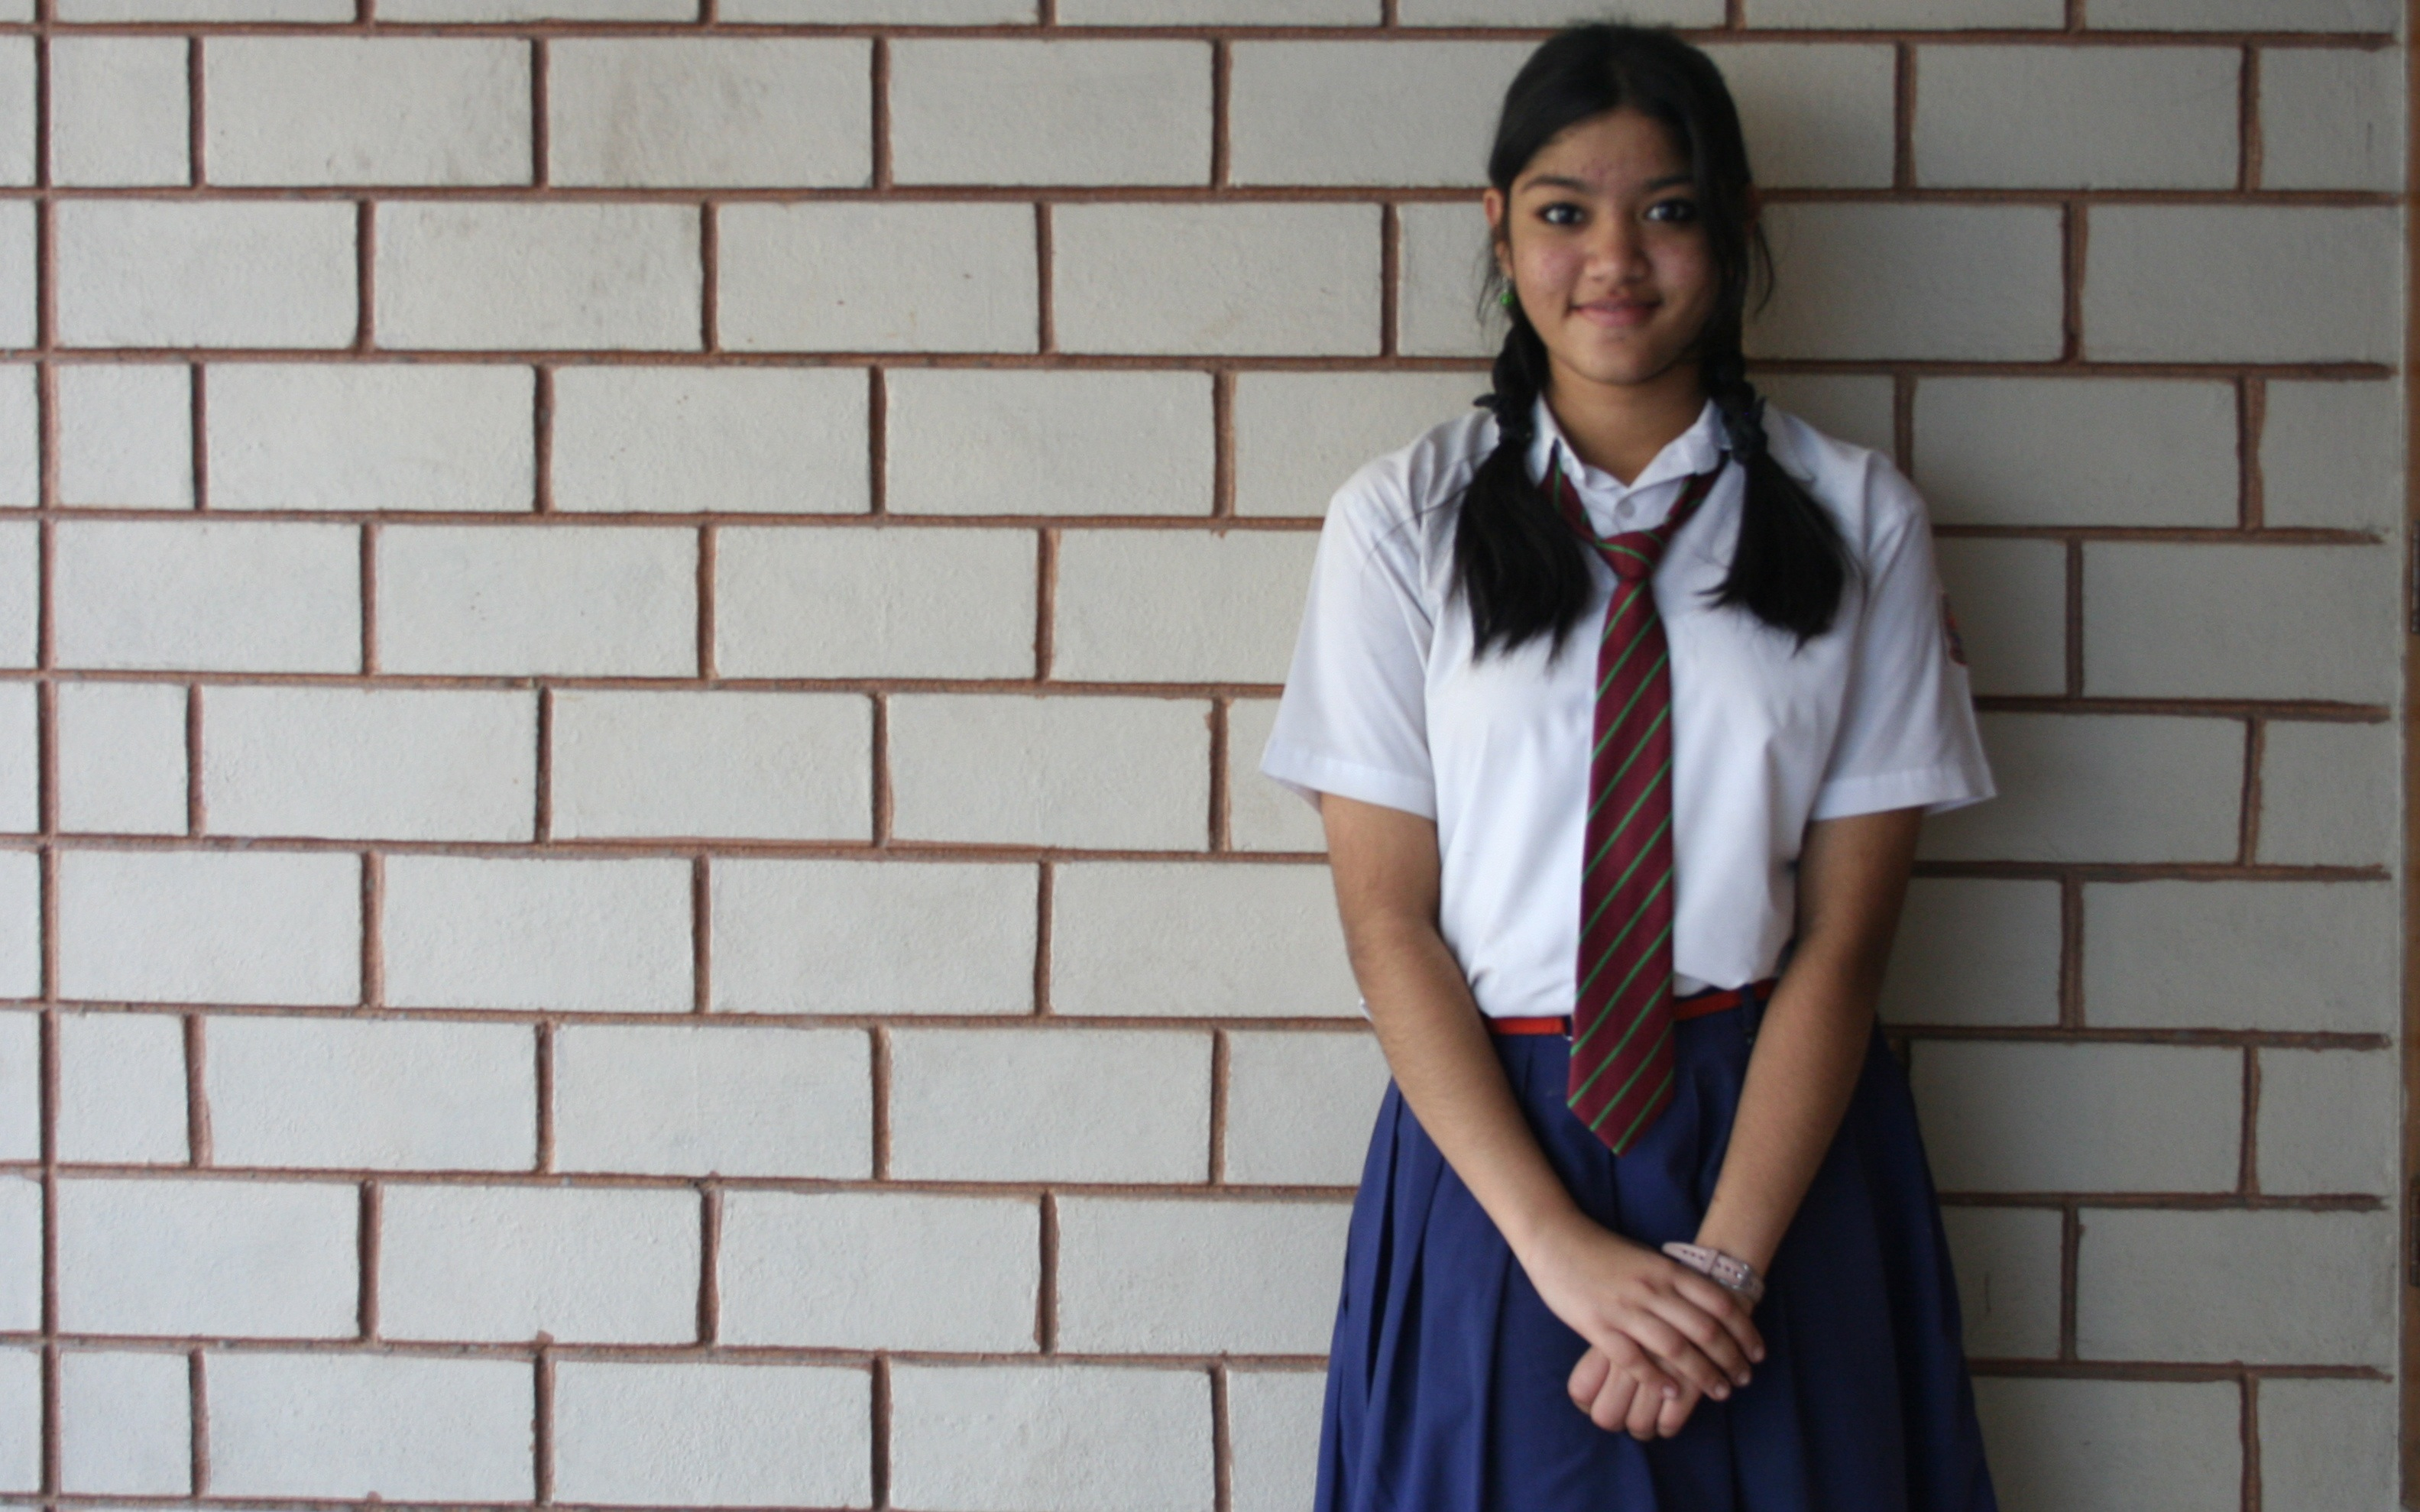 Schoolgirl standing and smiling